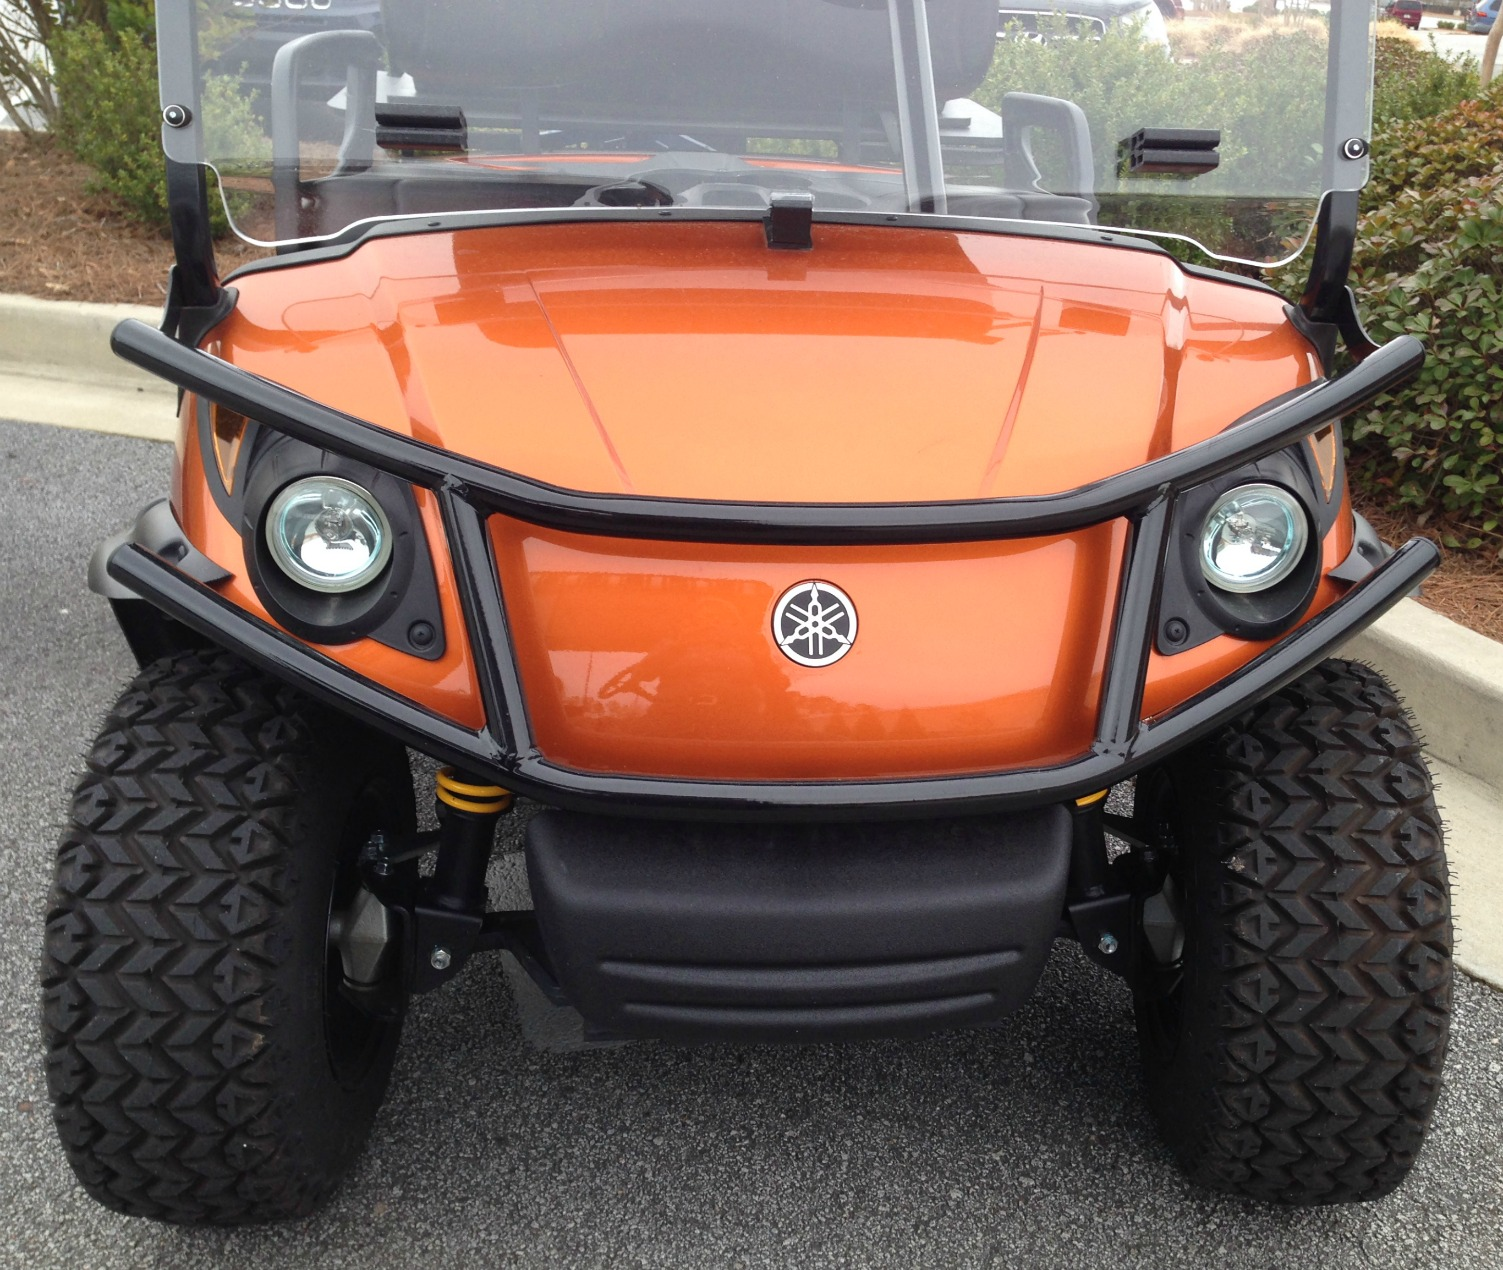 Yamaha Golf Cart - One Of The Most Trusted Makes for Golf Carts on